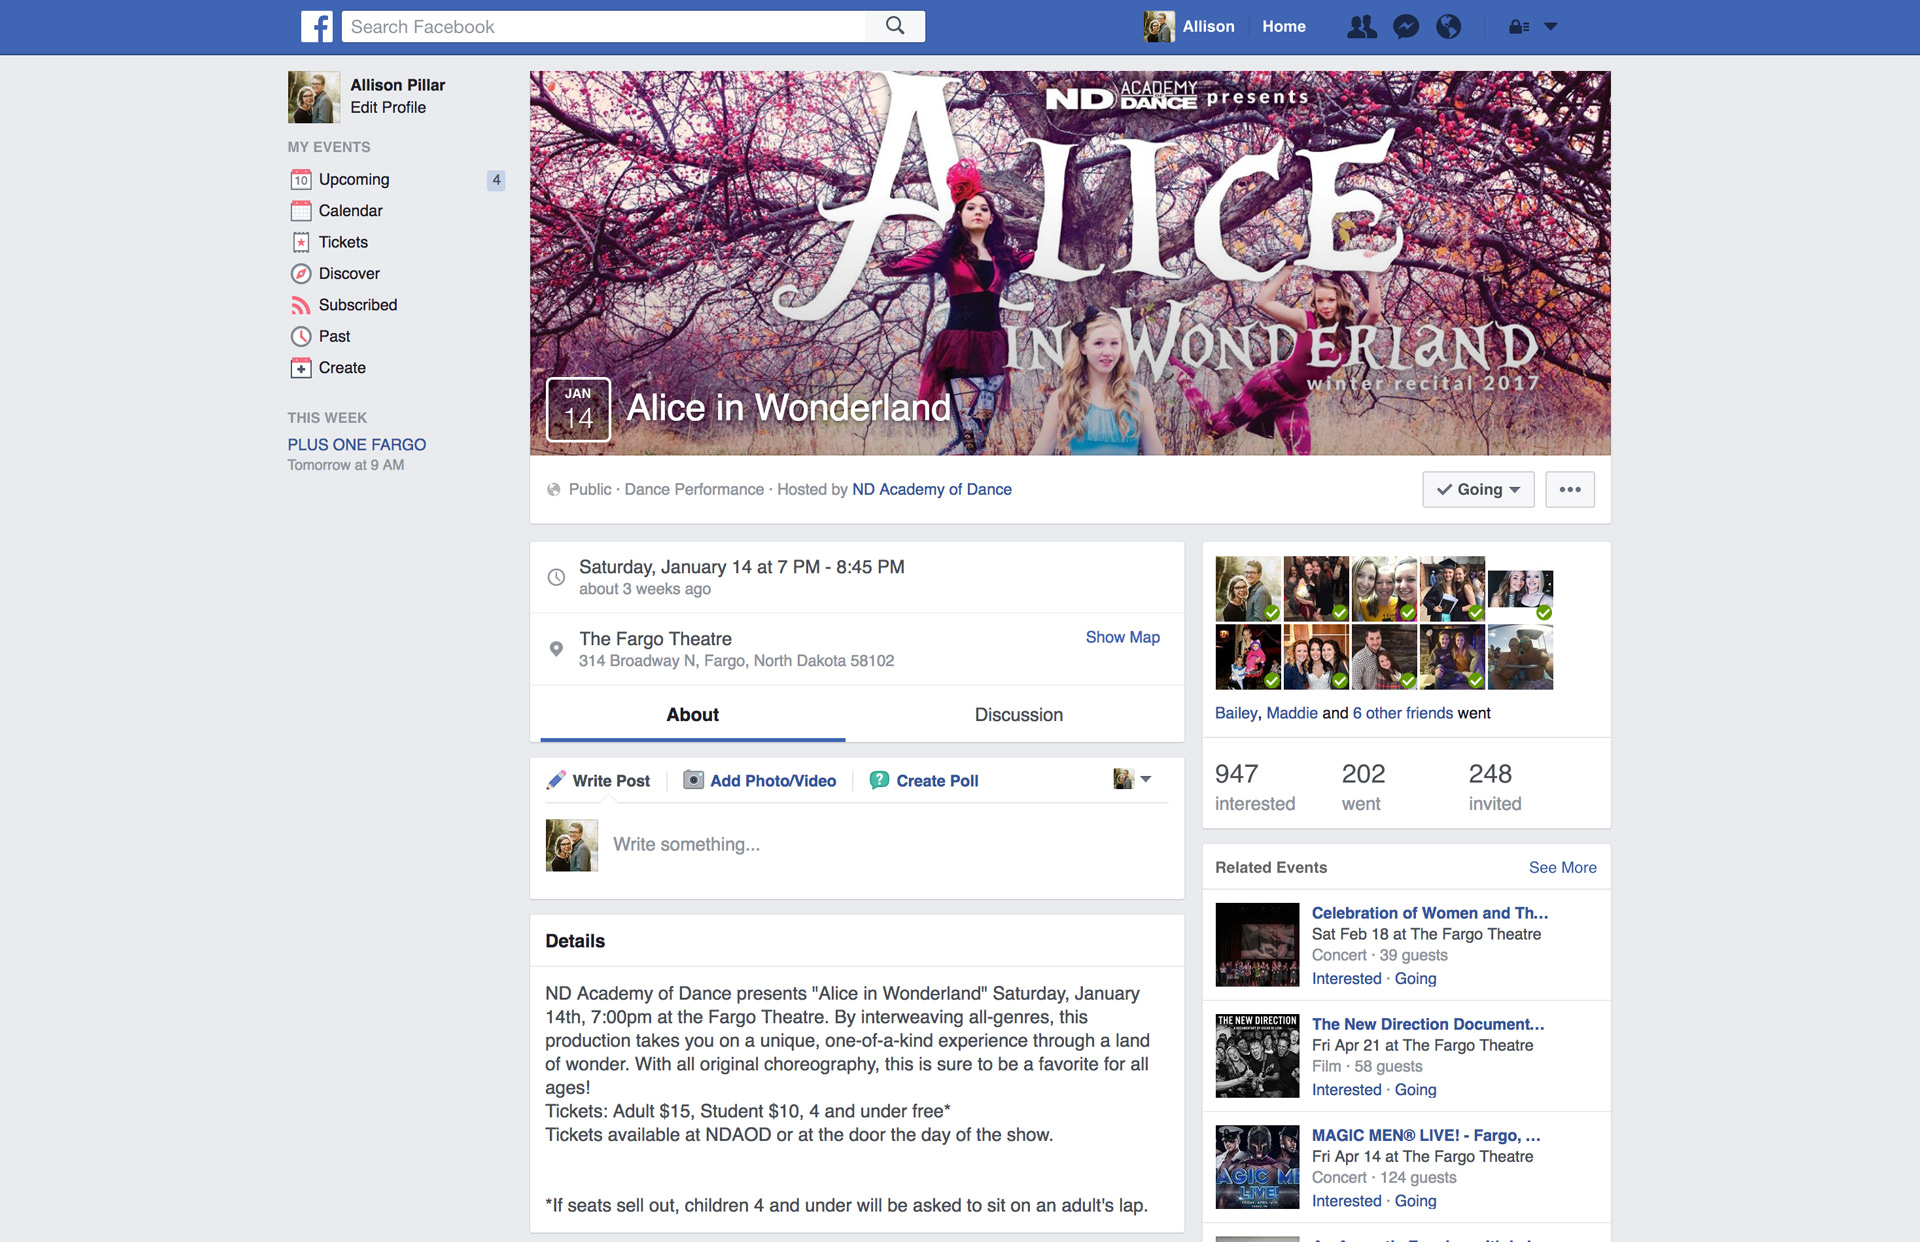 Screen capture of Alice in Wonderland Facebook event page